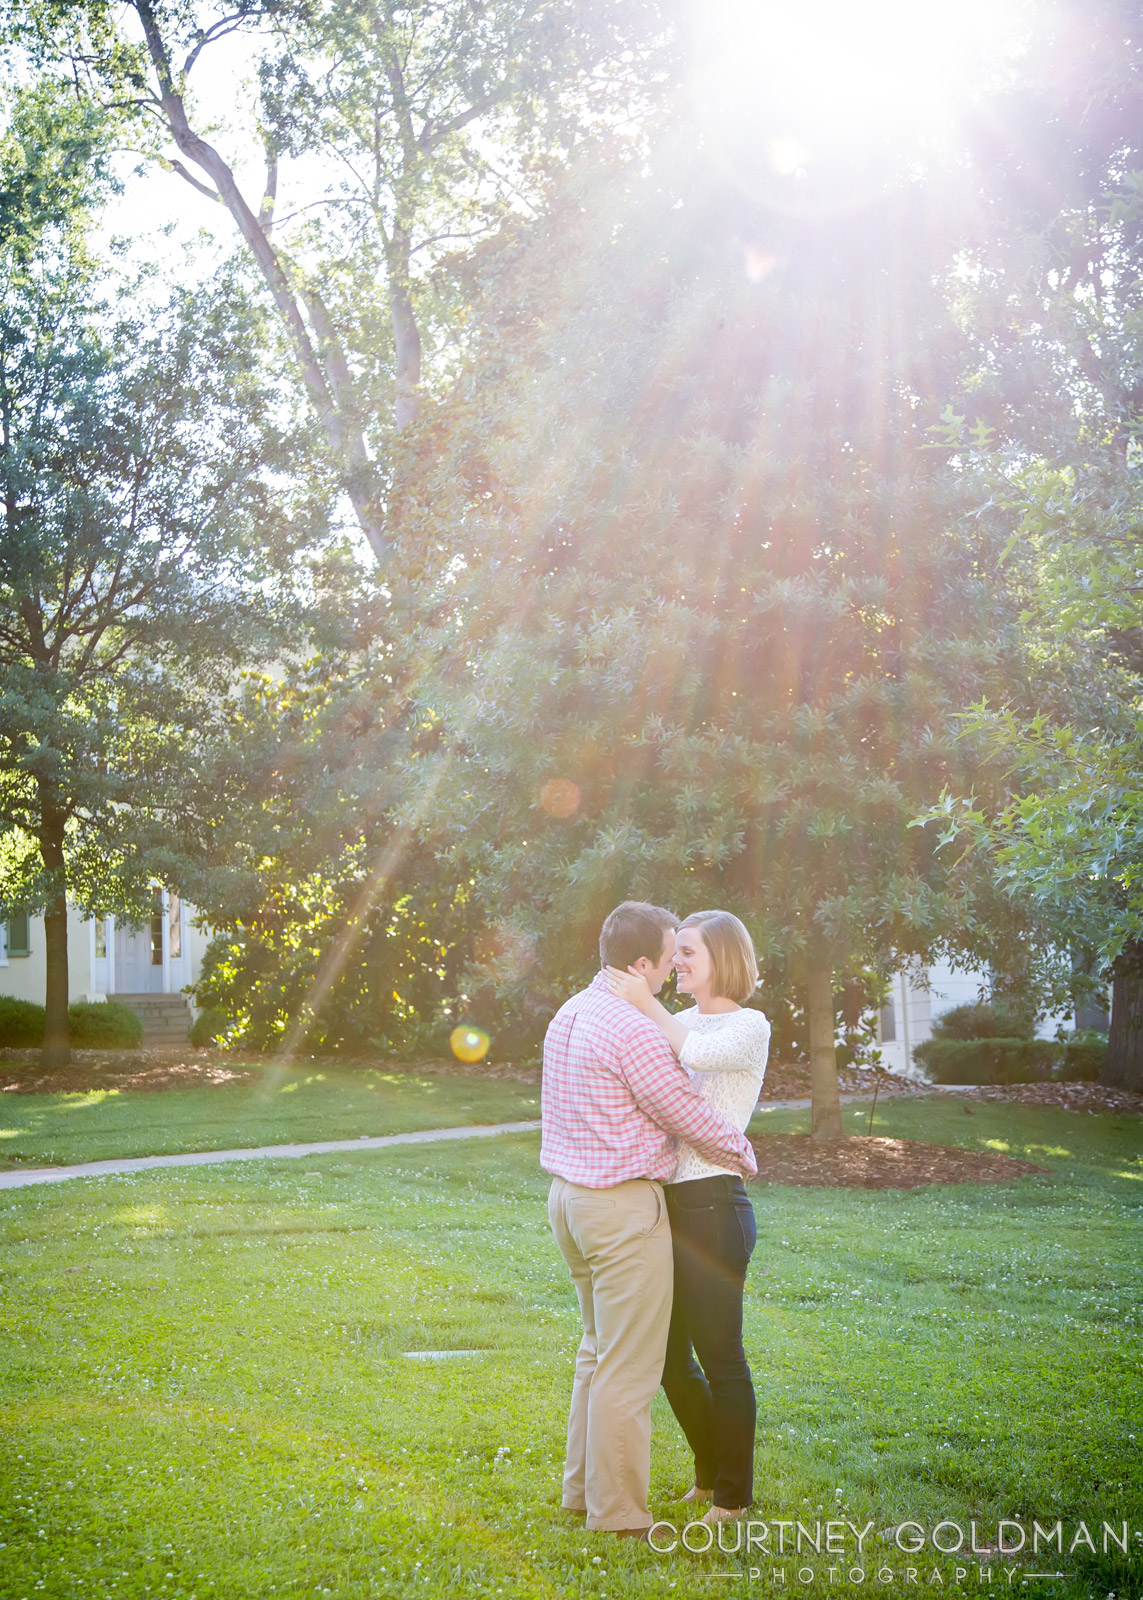 Atlanta-Couples-Engagement-Proposal-Photography-by-Courtney-Goldman-14.jpg